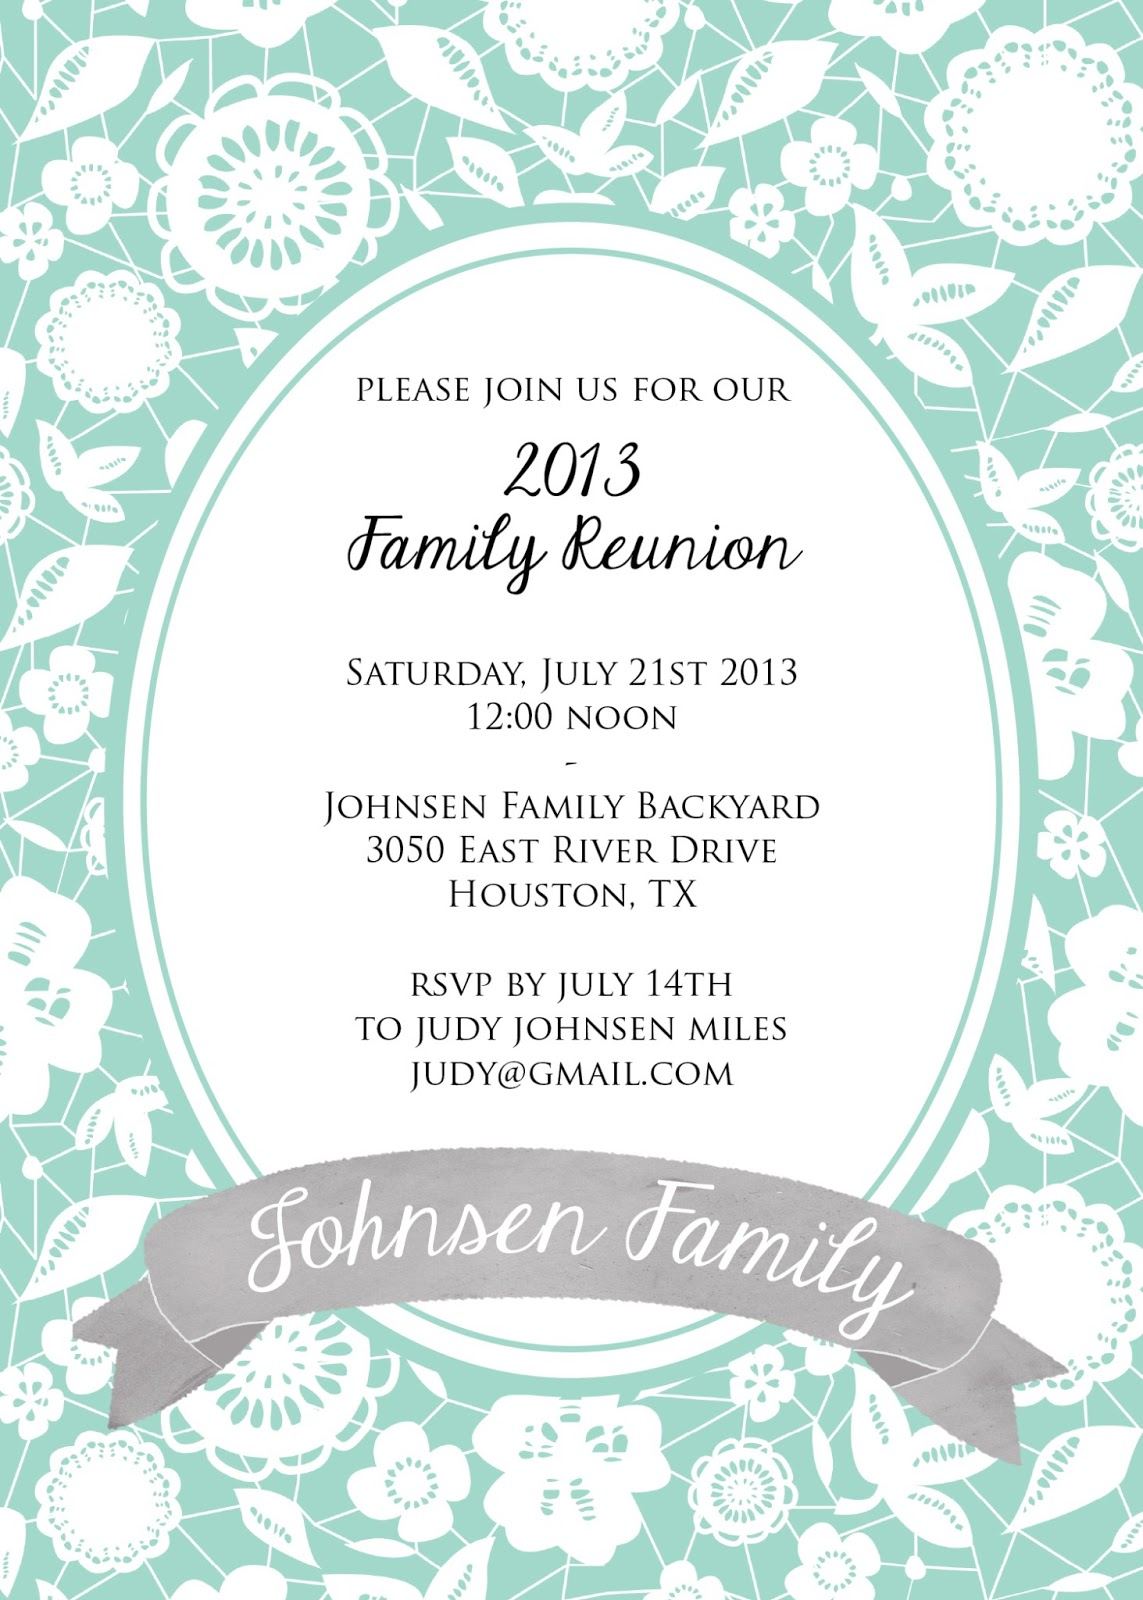 Reunion Invitation Templates 1000 images about reunion – Family Gathering Invitation Wording